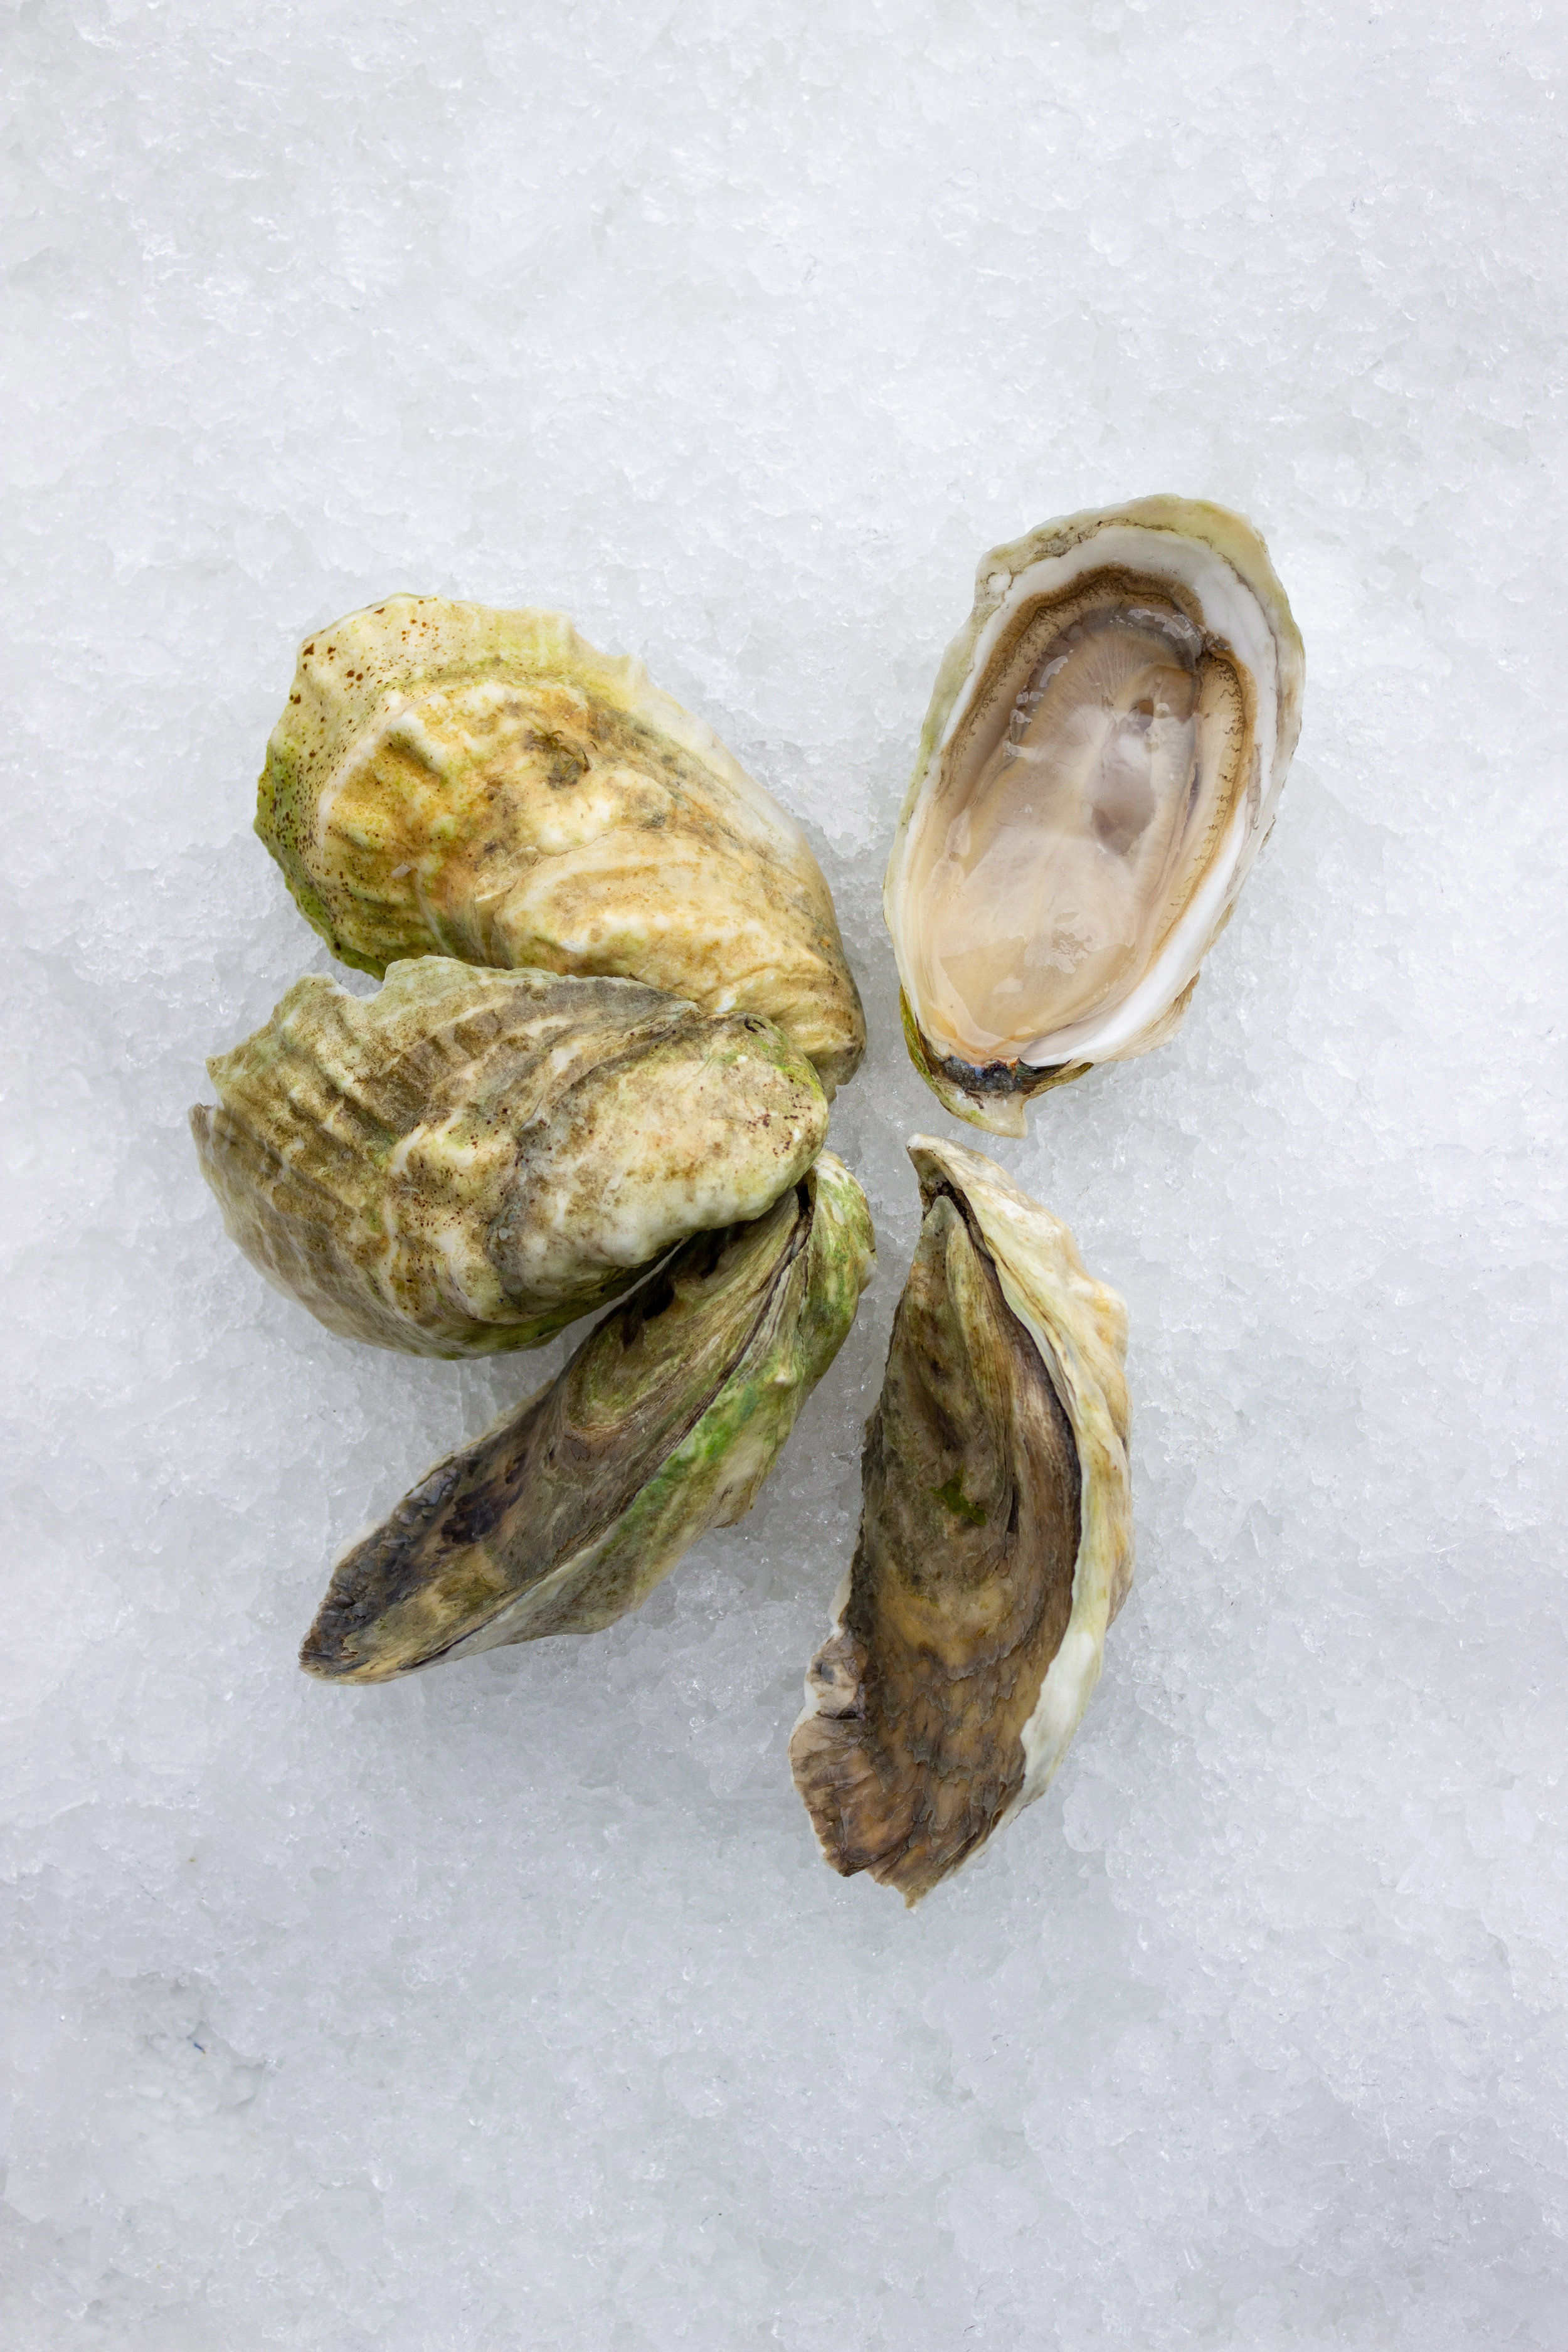 A fresh oyster is alive, has ample liquor, and maintains its aroma and flavor from harvest. -